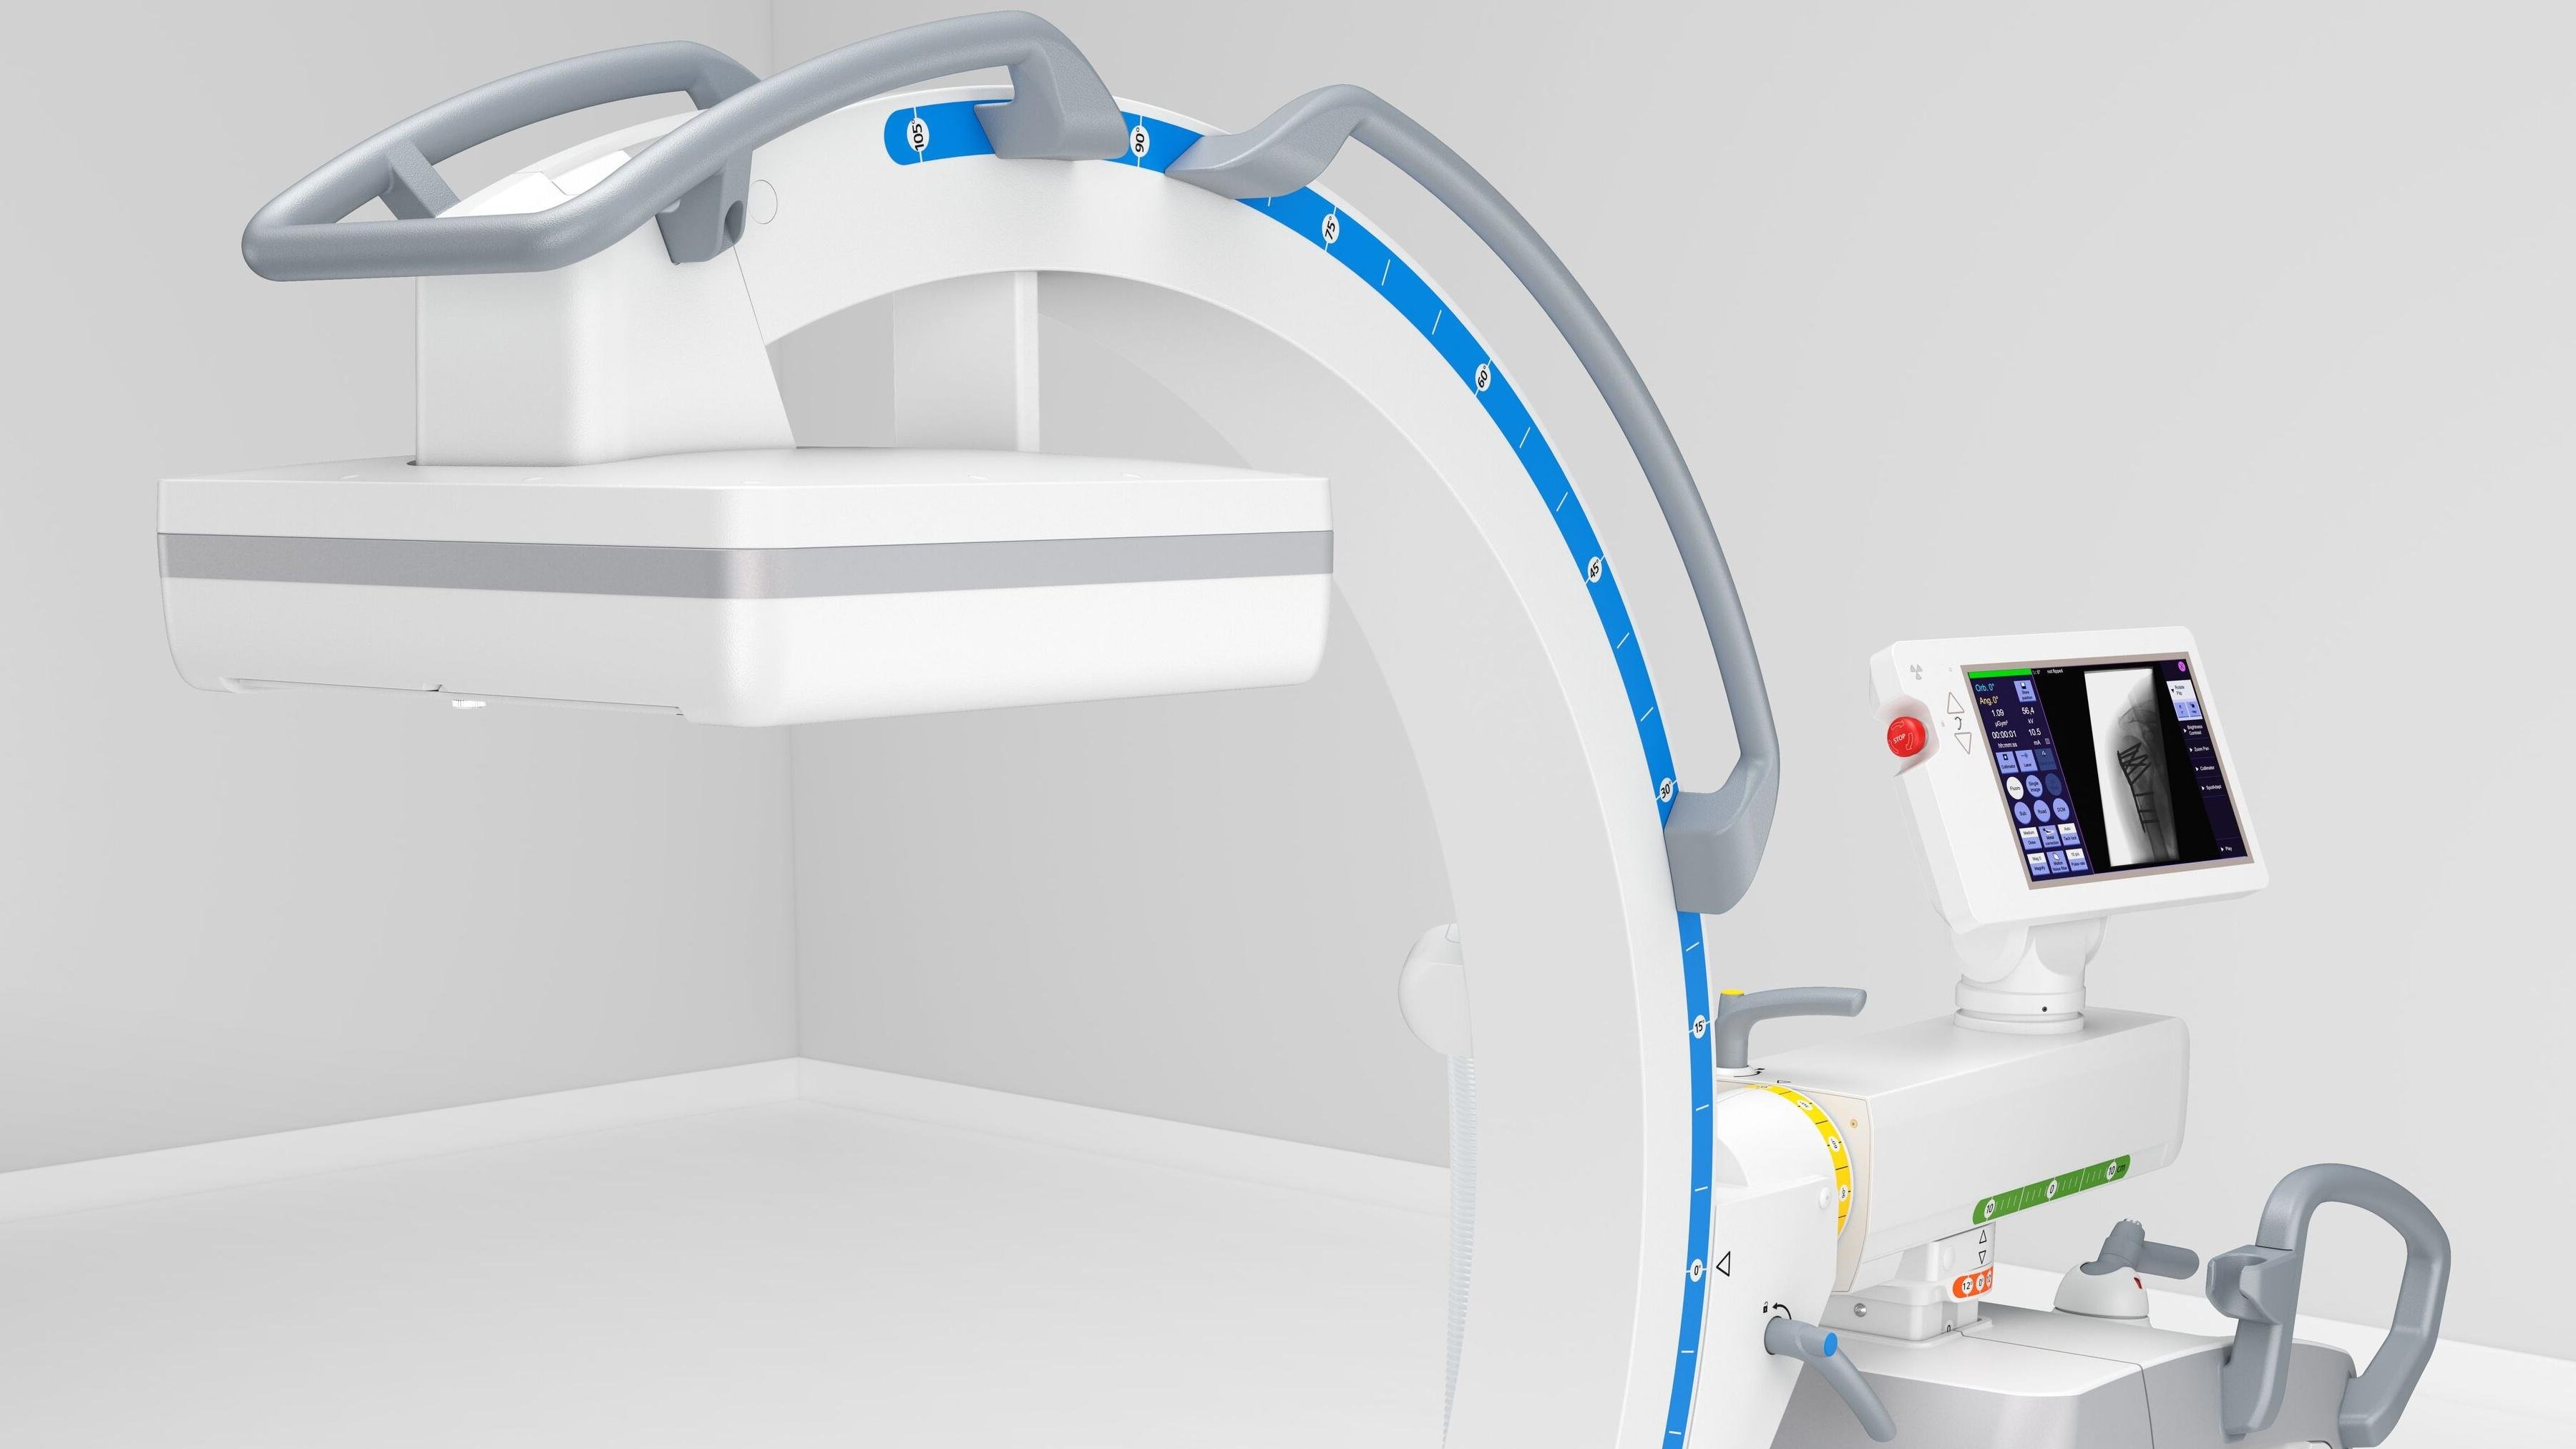 At RSNA 2020, Siemens Healthineers Introduces Cios Flow Mobile C-arm System<br />